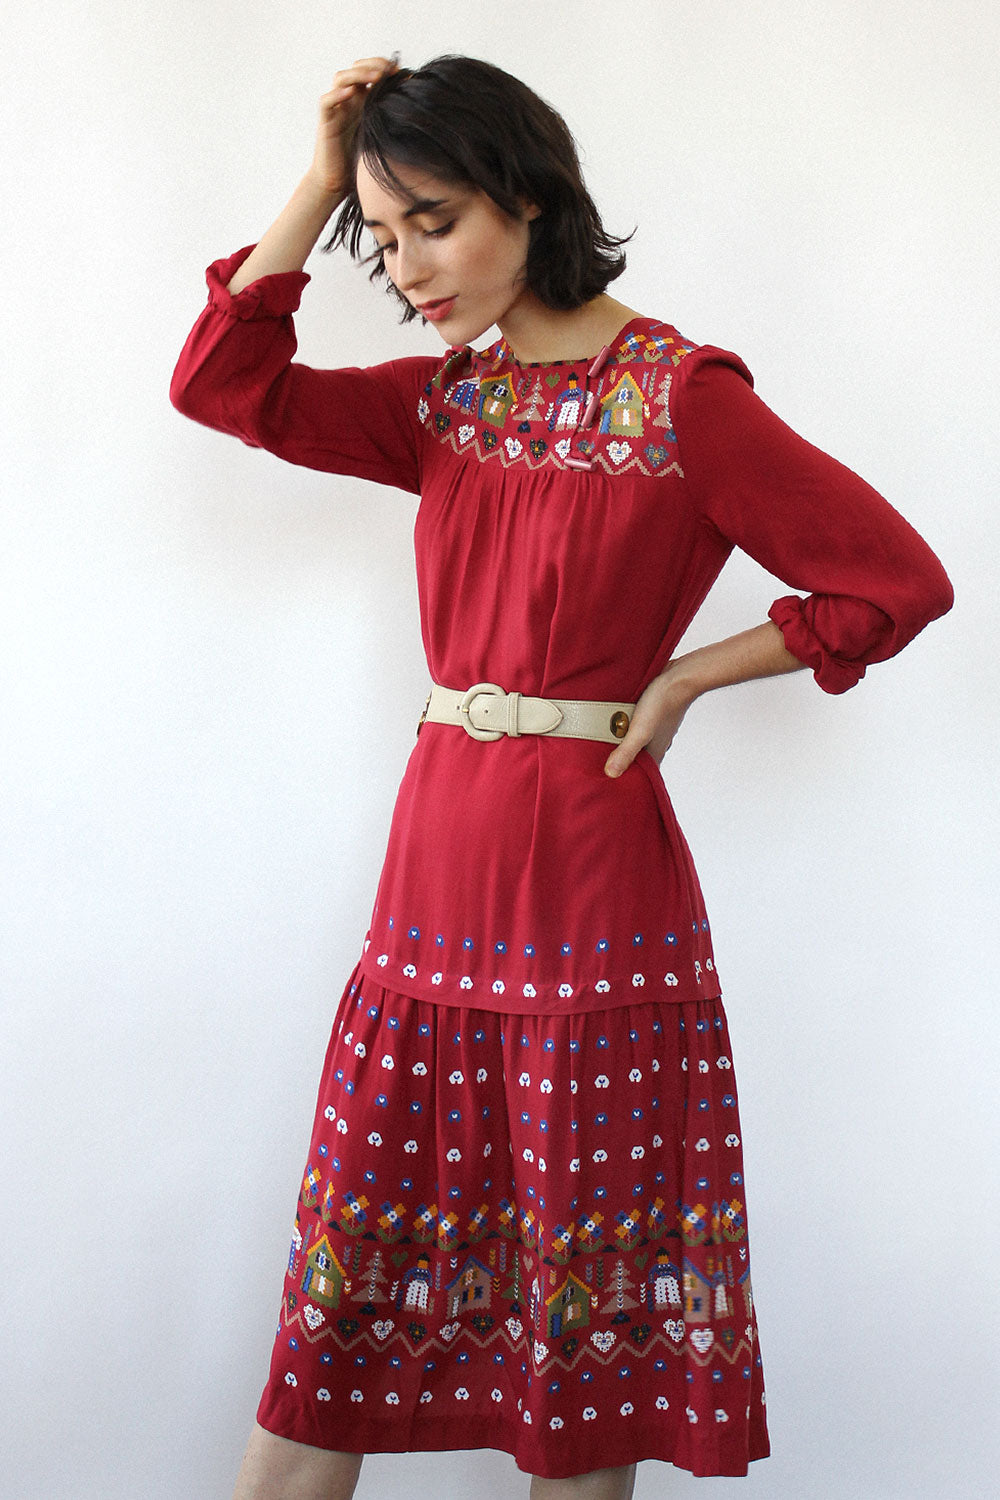 Folktale Toggle Dress XS-S/M